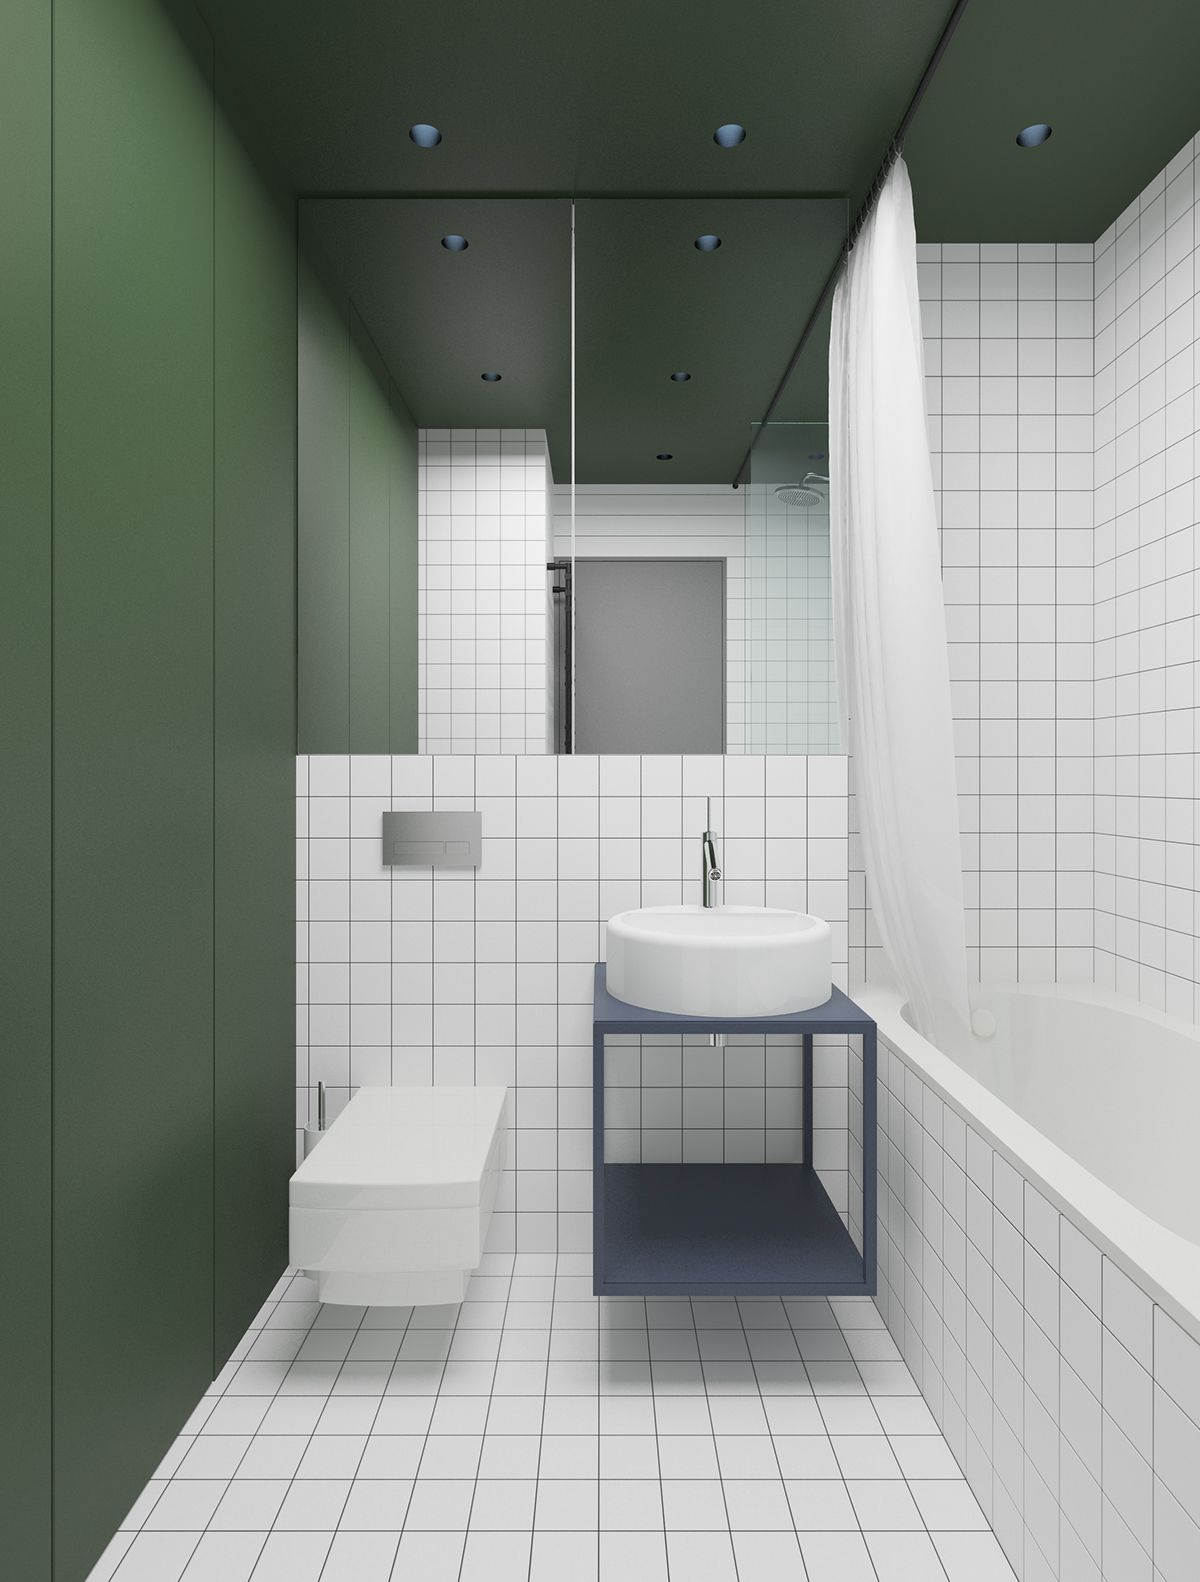 2017 05 bathroom design architecture - Hoffman Interior Design Is A Beautiful Design Project From 2017 By Architect Emil Dervish Location In Kiev Ukraine